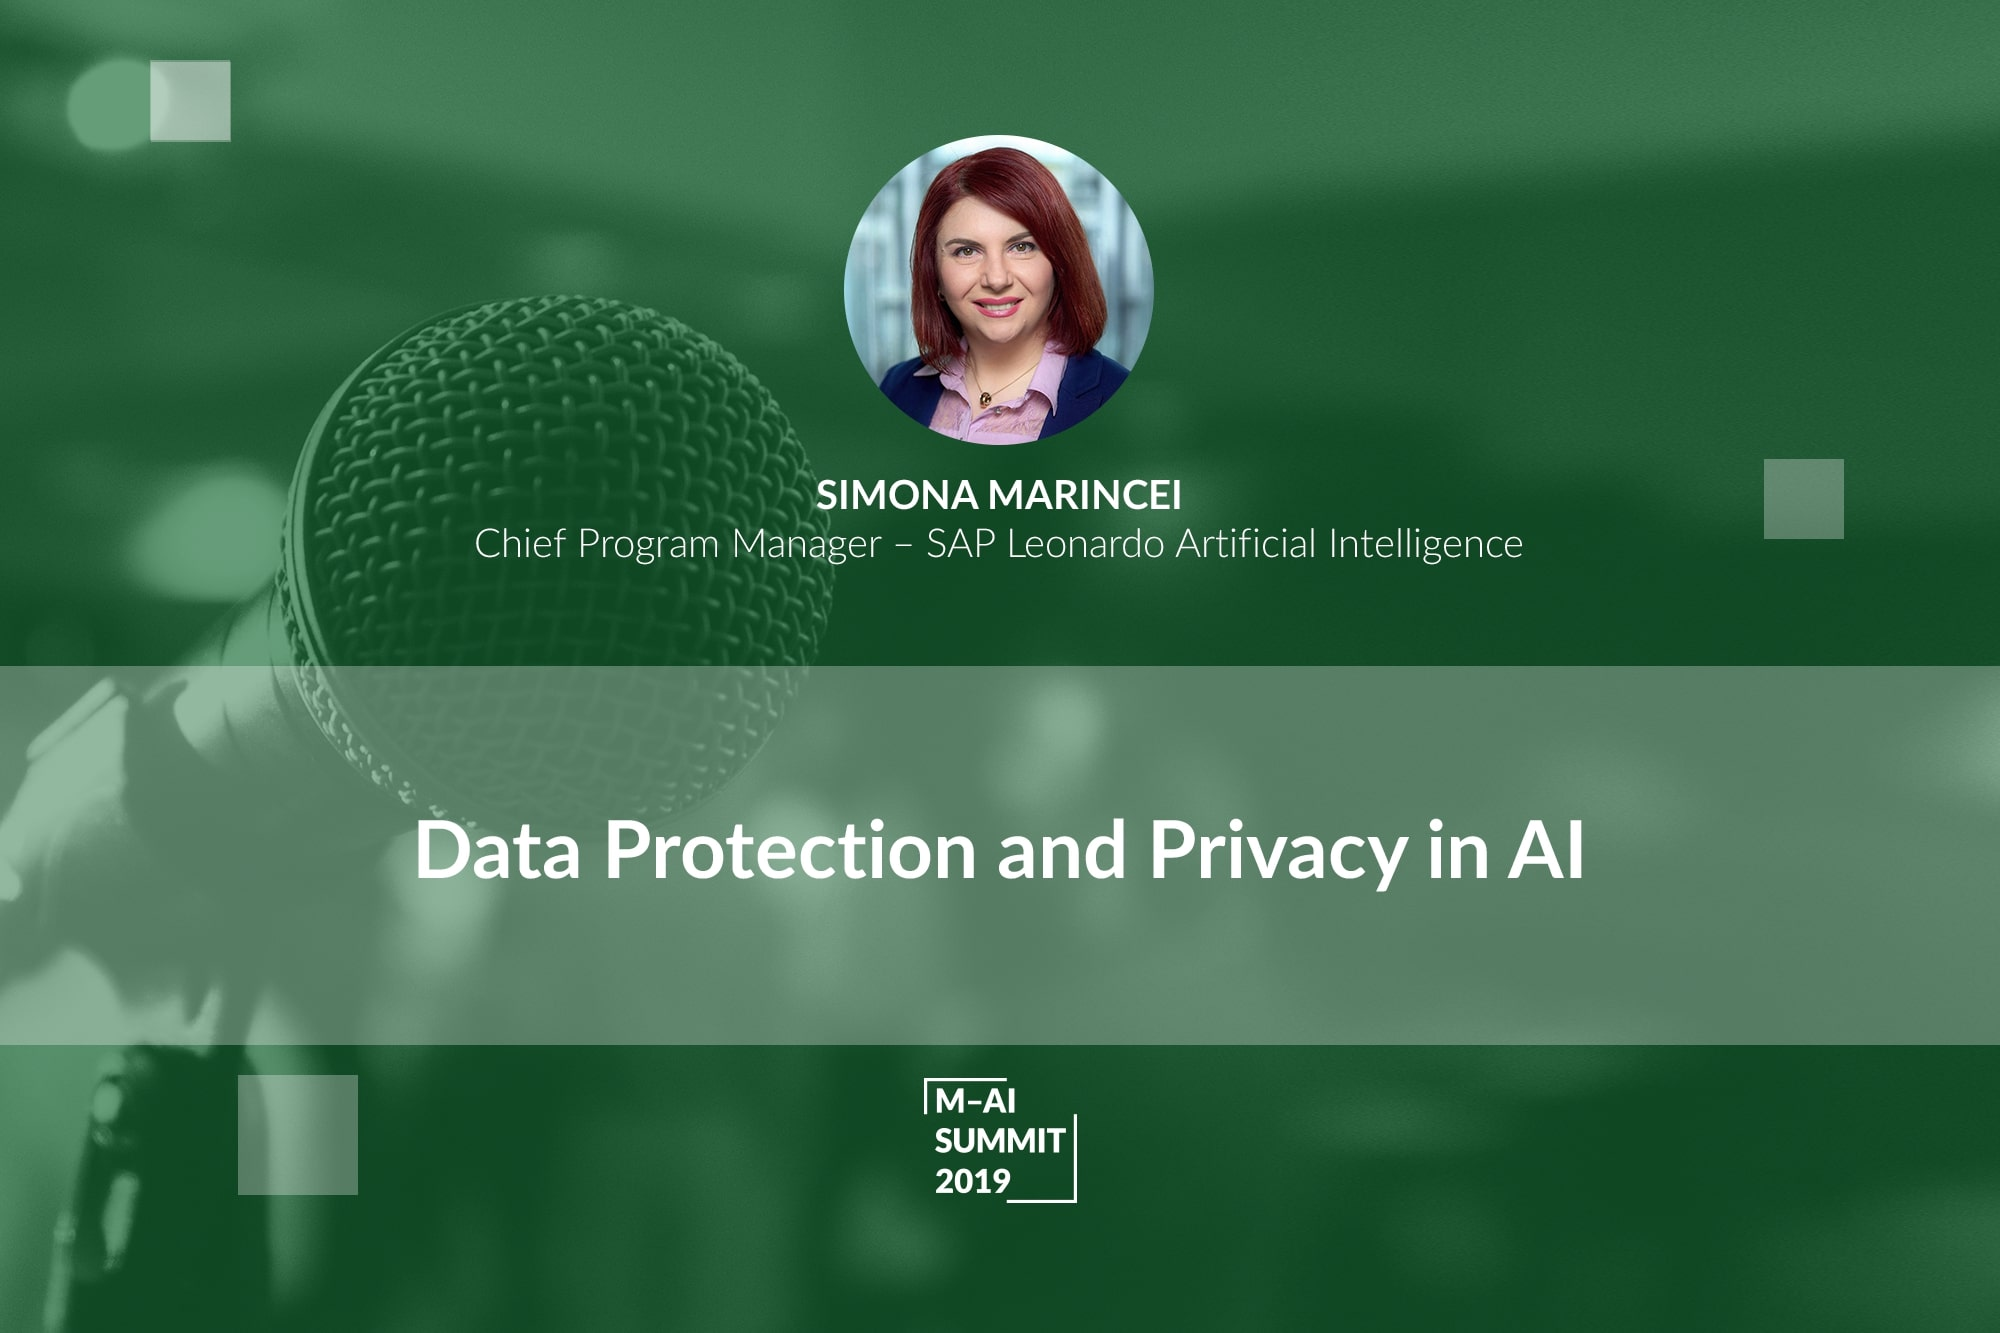 What Happens When Companies Fail in Data Protection. Simona Marincei Speaks about the Major Cases